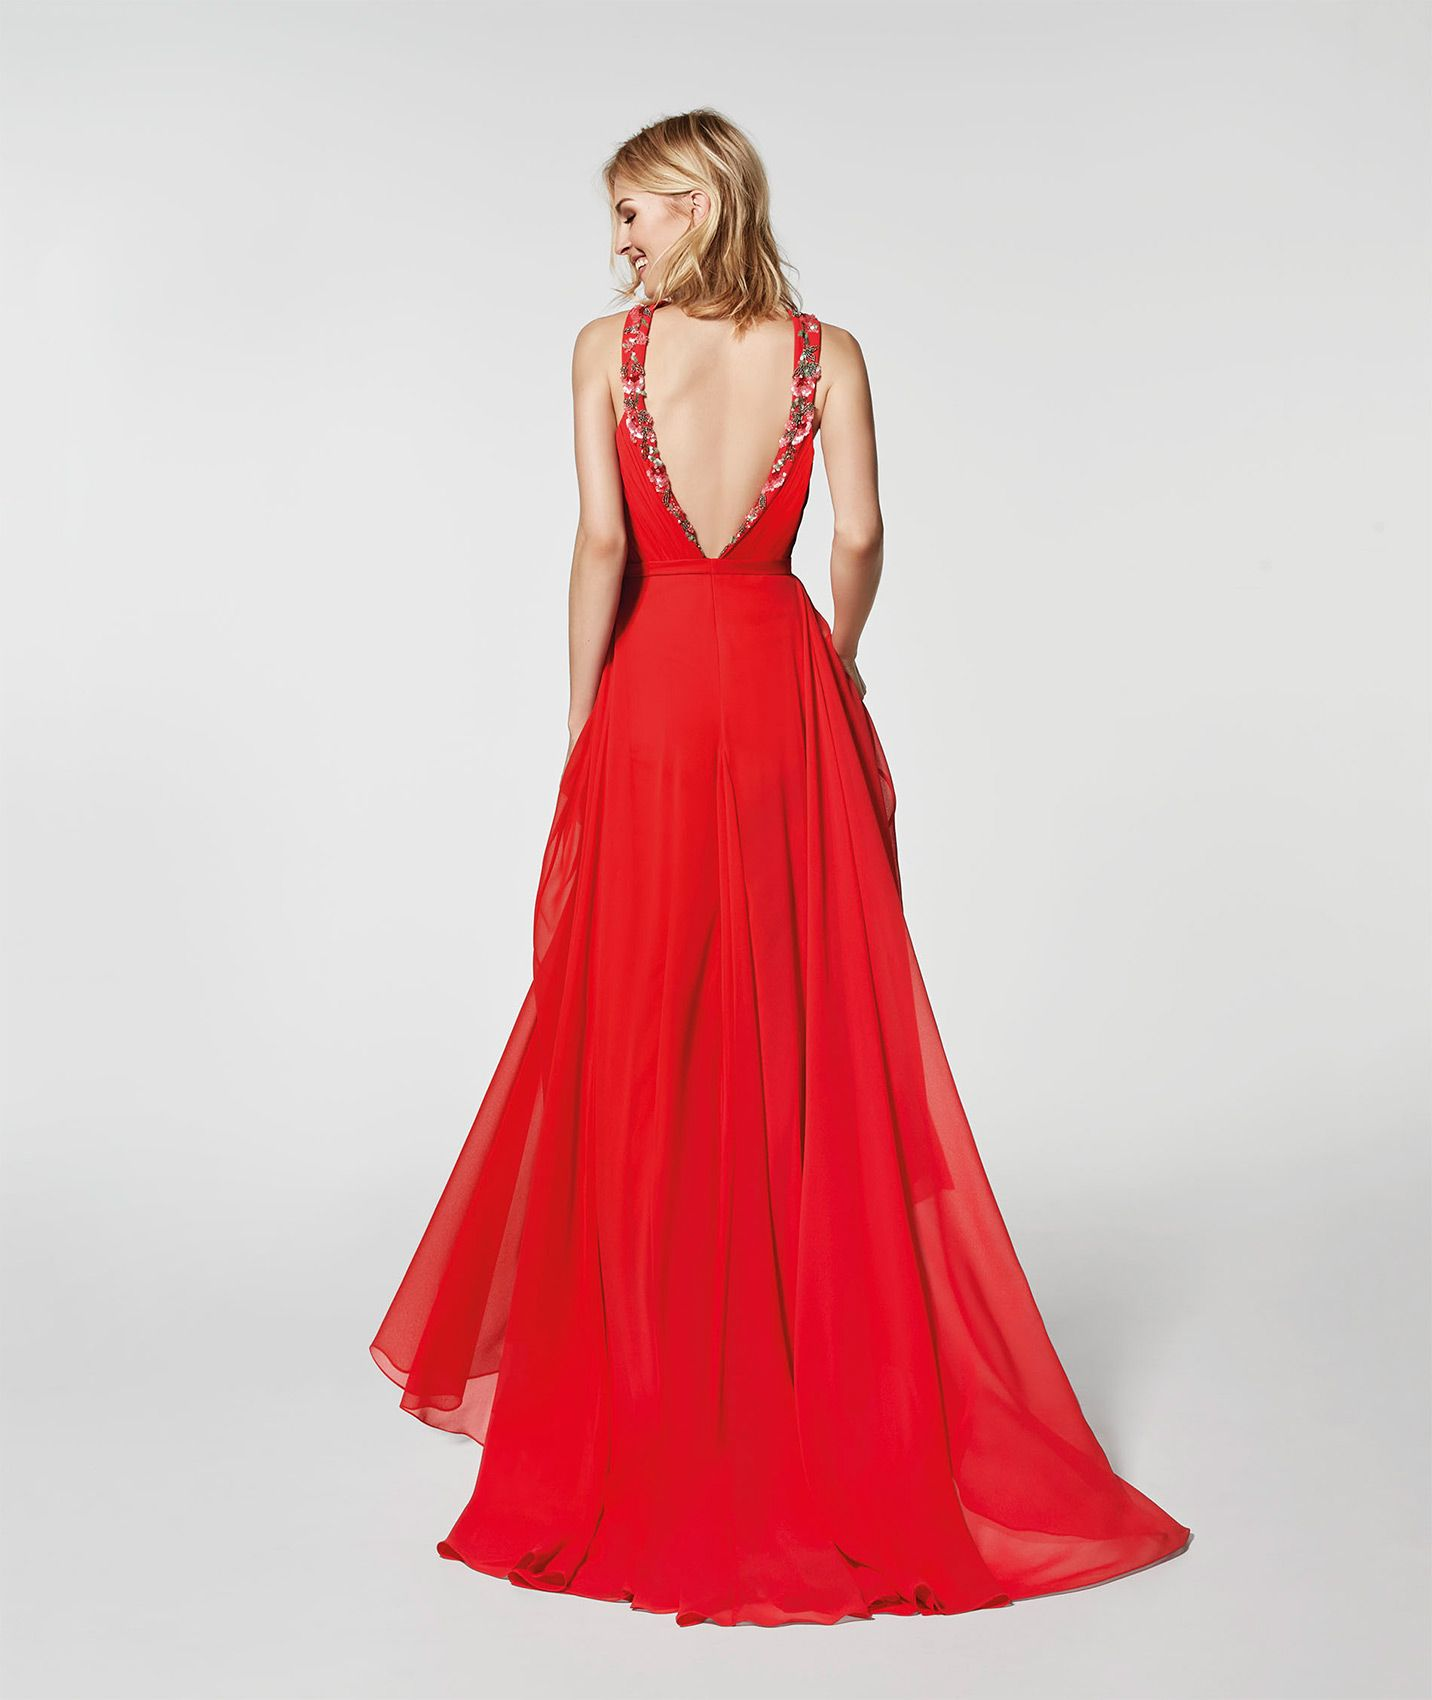 Robe rouge cocktail longue